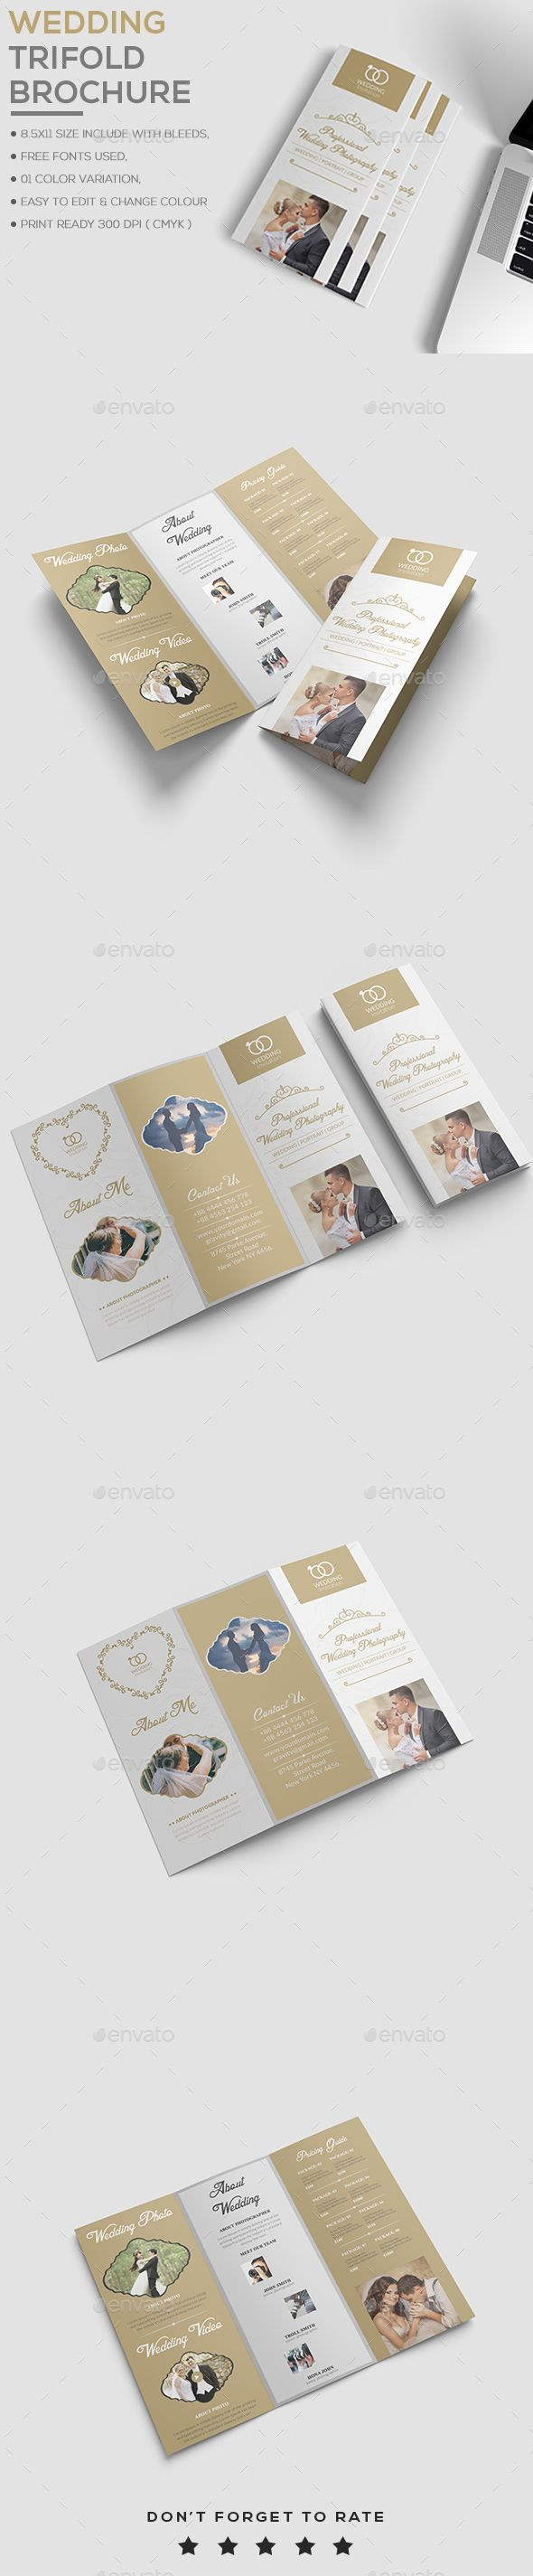 Excellent 1099 Misc Form Template Thick 12 Page Booklet Template Clean 15 Year Old Resume Sample 16 Birthday Invitation Templates Young 18 Month Calendar Template Dark18th Birthday Invitation Templates 25  Best Ideas About Wedding Brochure On Pinterest | Brochure ..